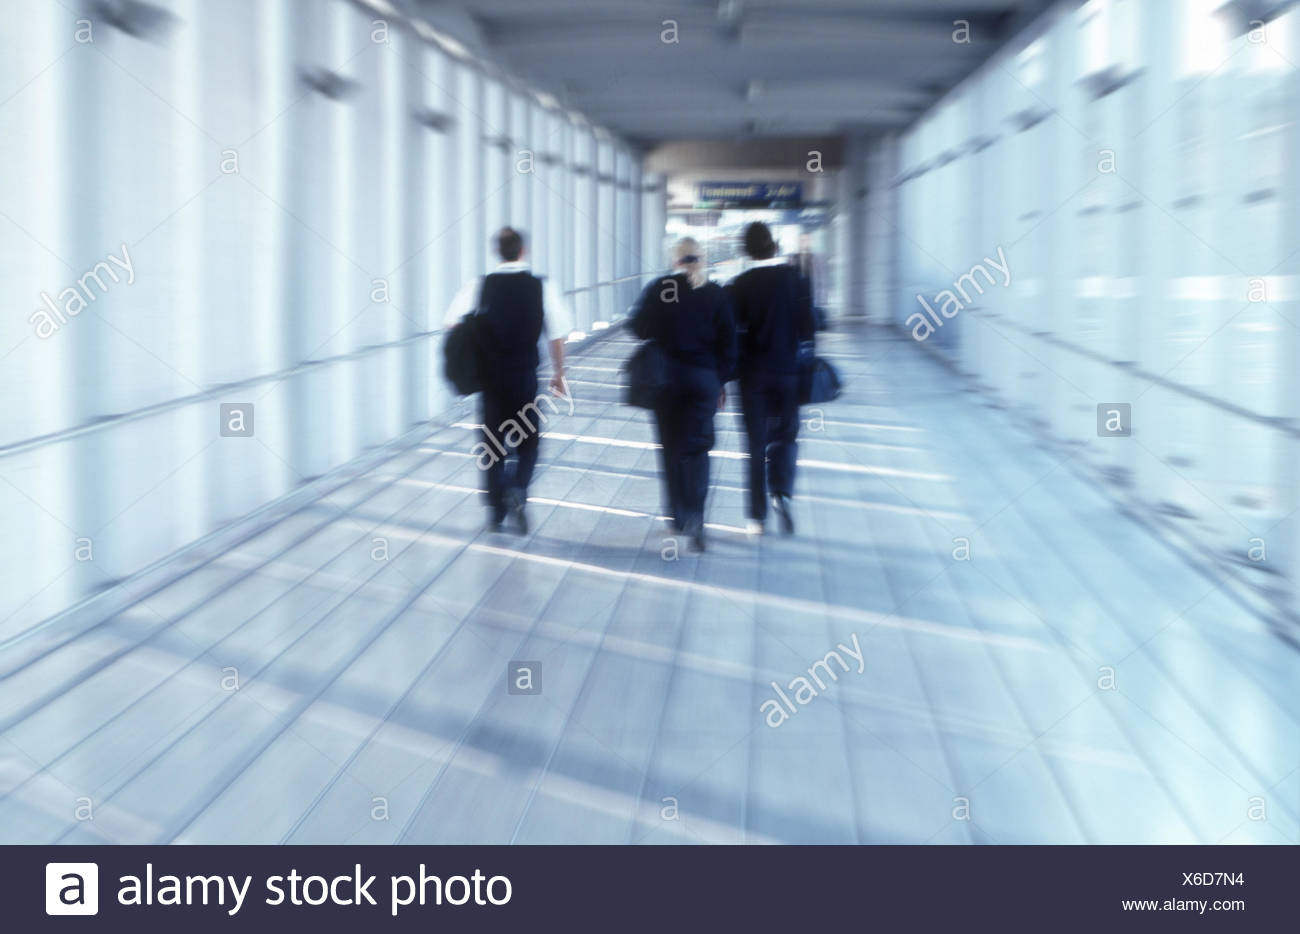 Business premises, walk, colleague, back view, blur, no model release, business, Manager, women, two, man, successfully, purposefully, together, team, Germany, Dusseldorf, airport 'Cologne - stewardesses, crew members, crew, flight attendants, occupation, - Stock Image